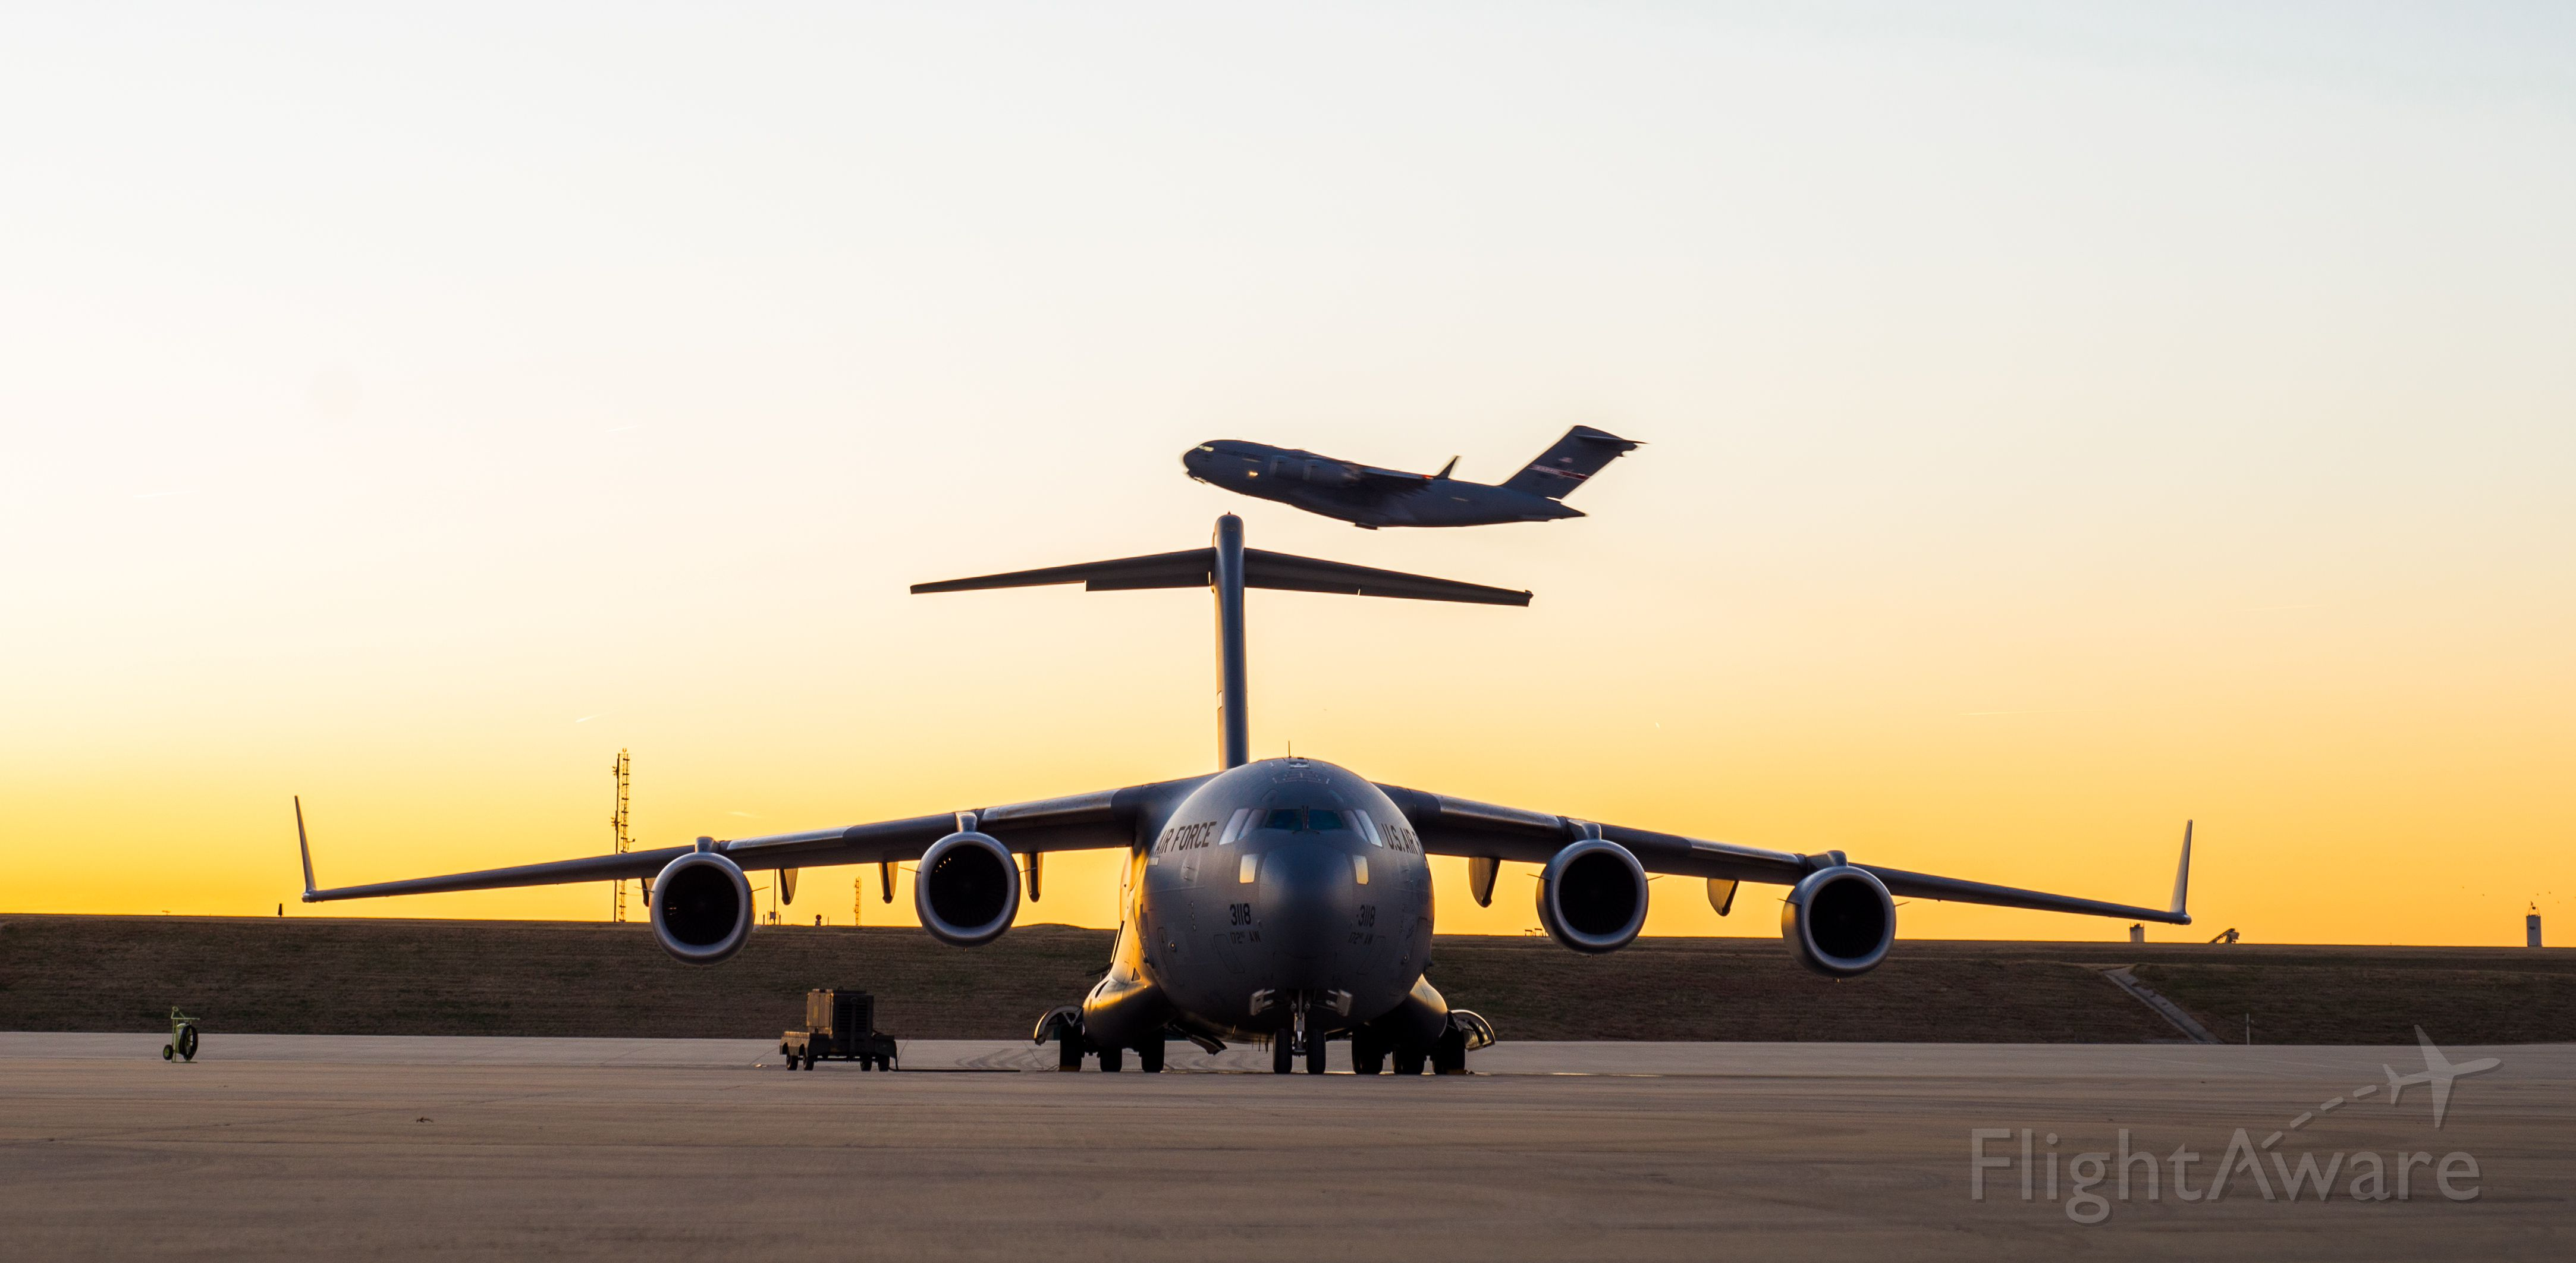 — — - A C-17 takes off while another rests on the ramp.